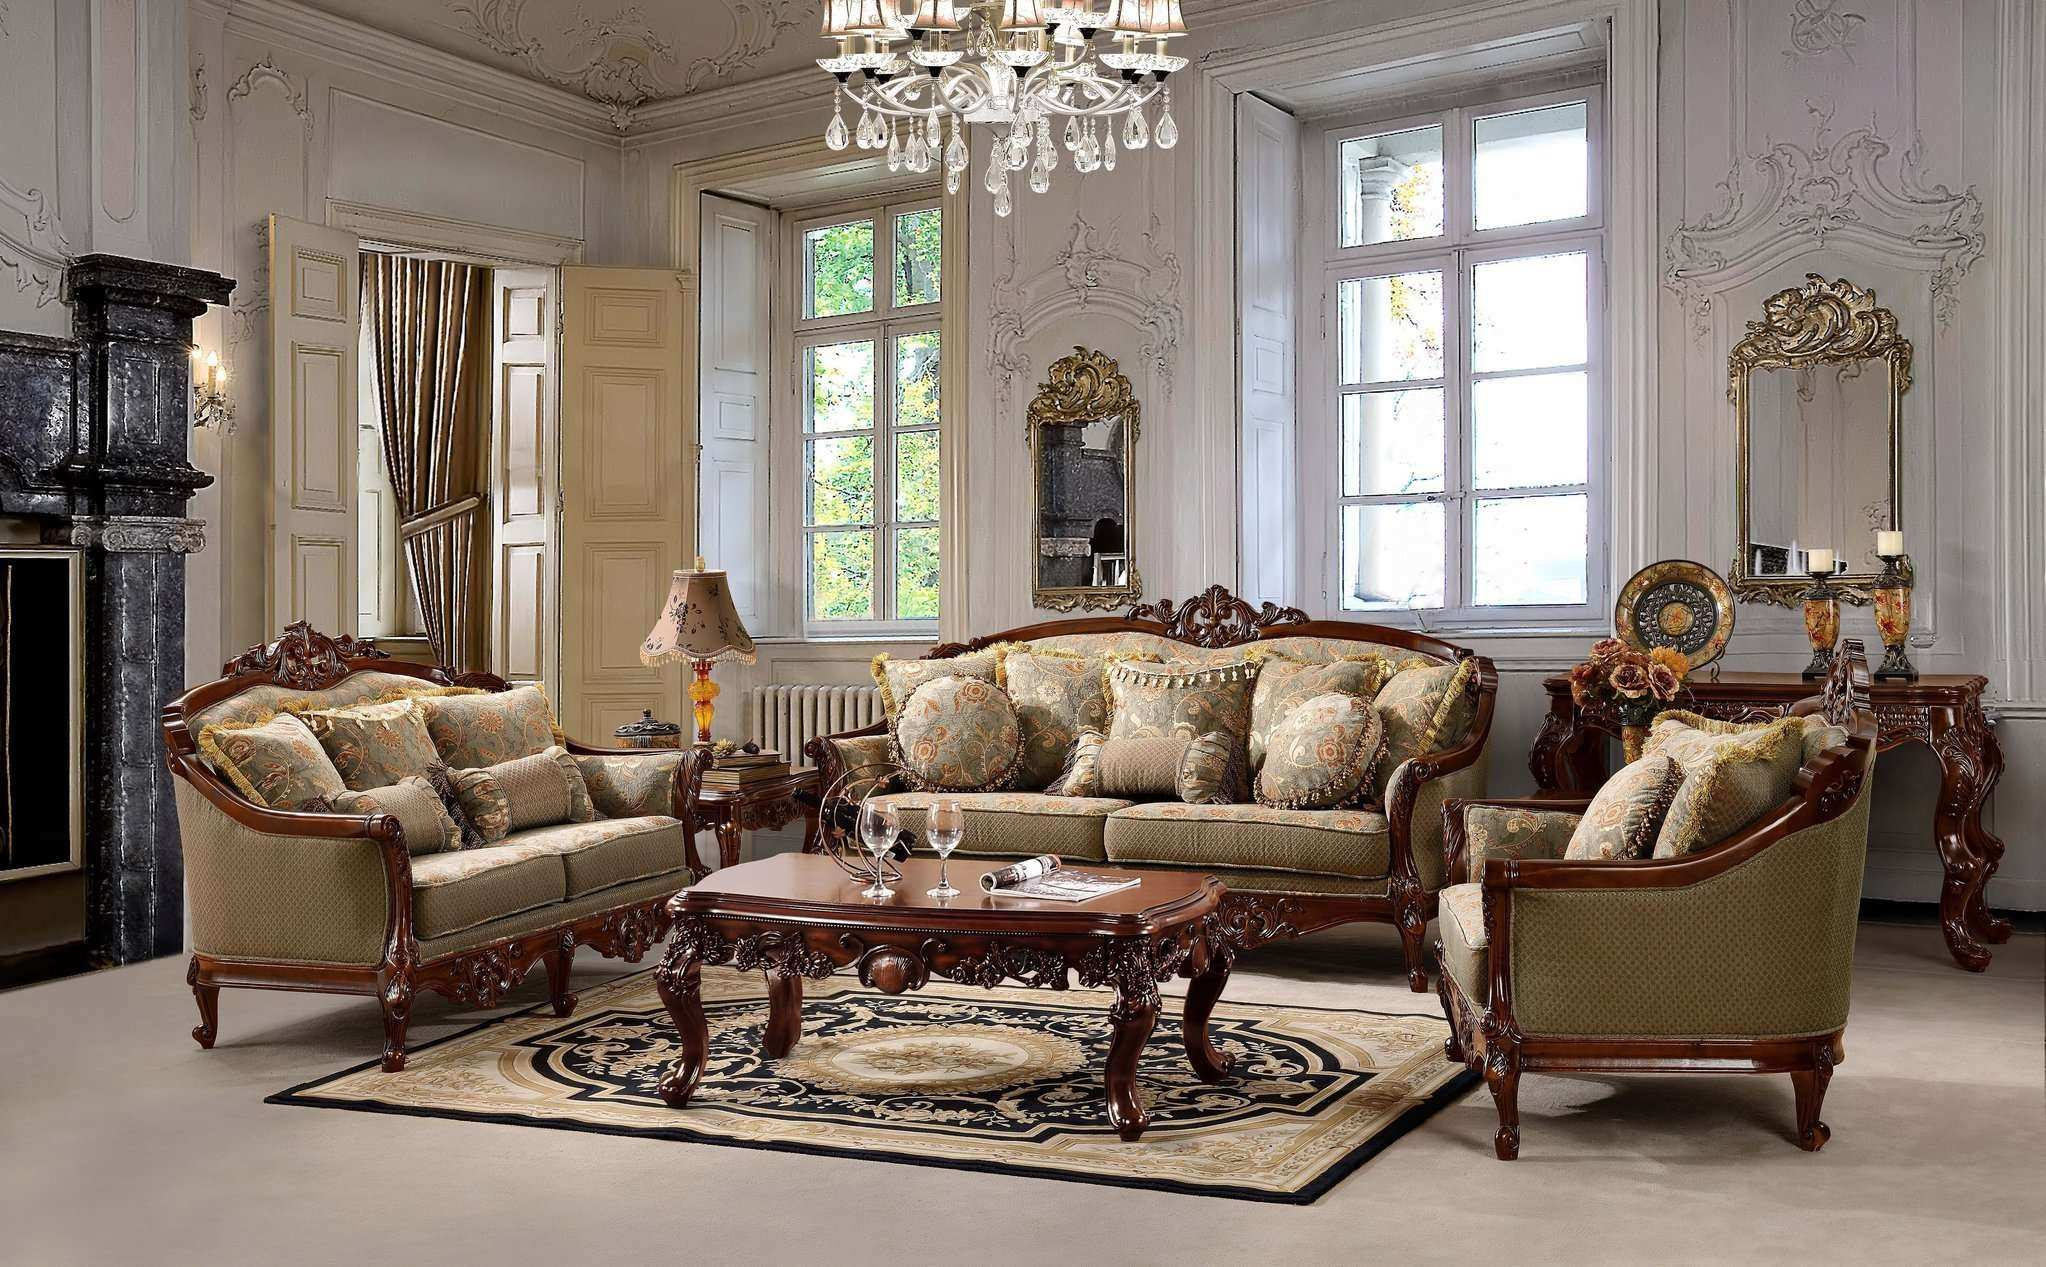 Living Room Traditional Decorating Ideas Awesome Shaker Chairs 0d